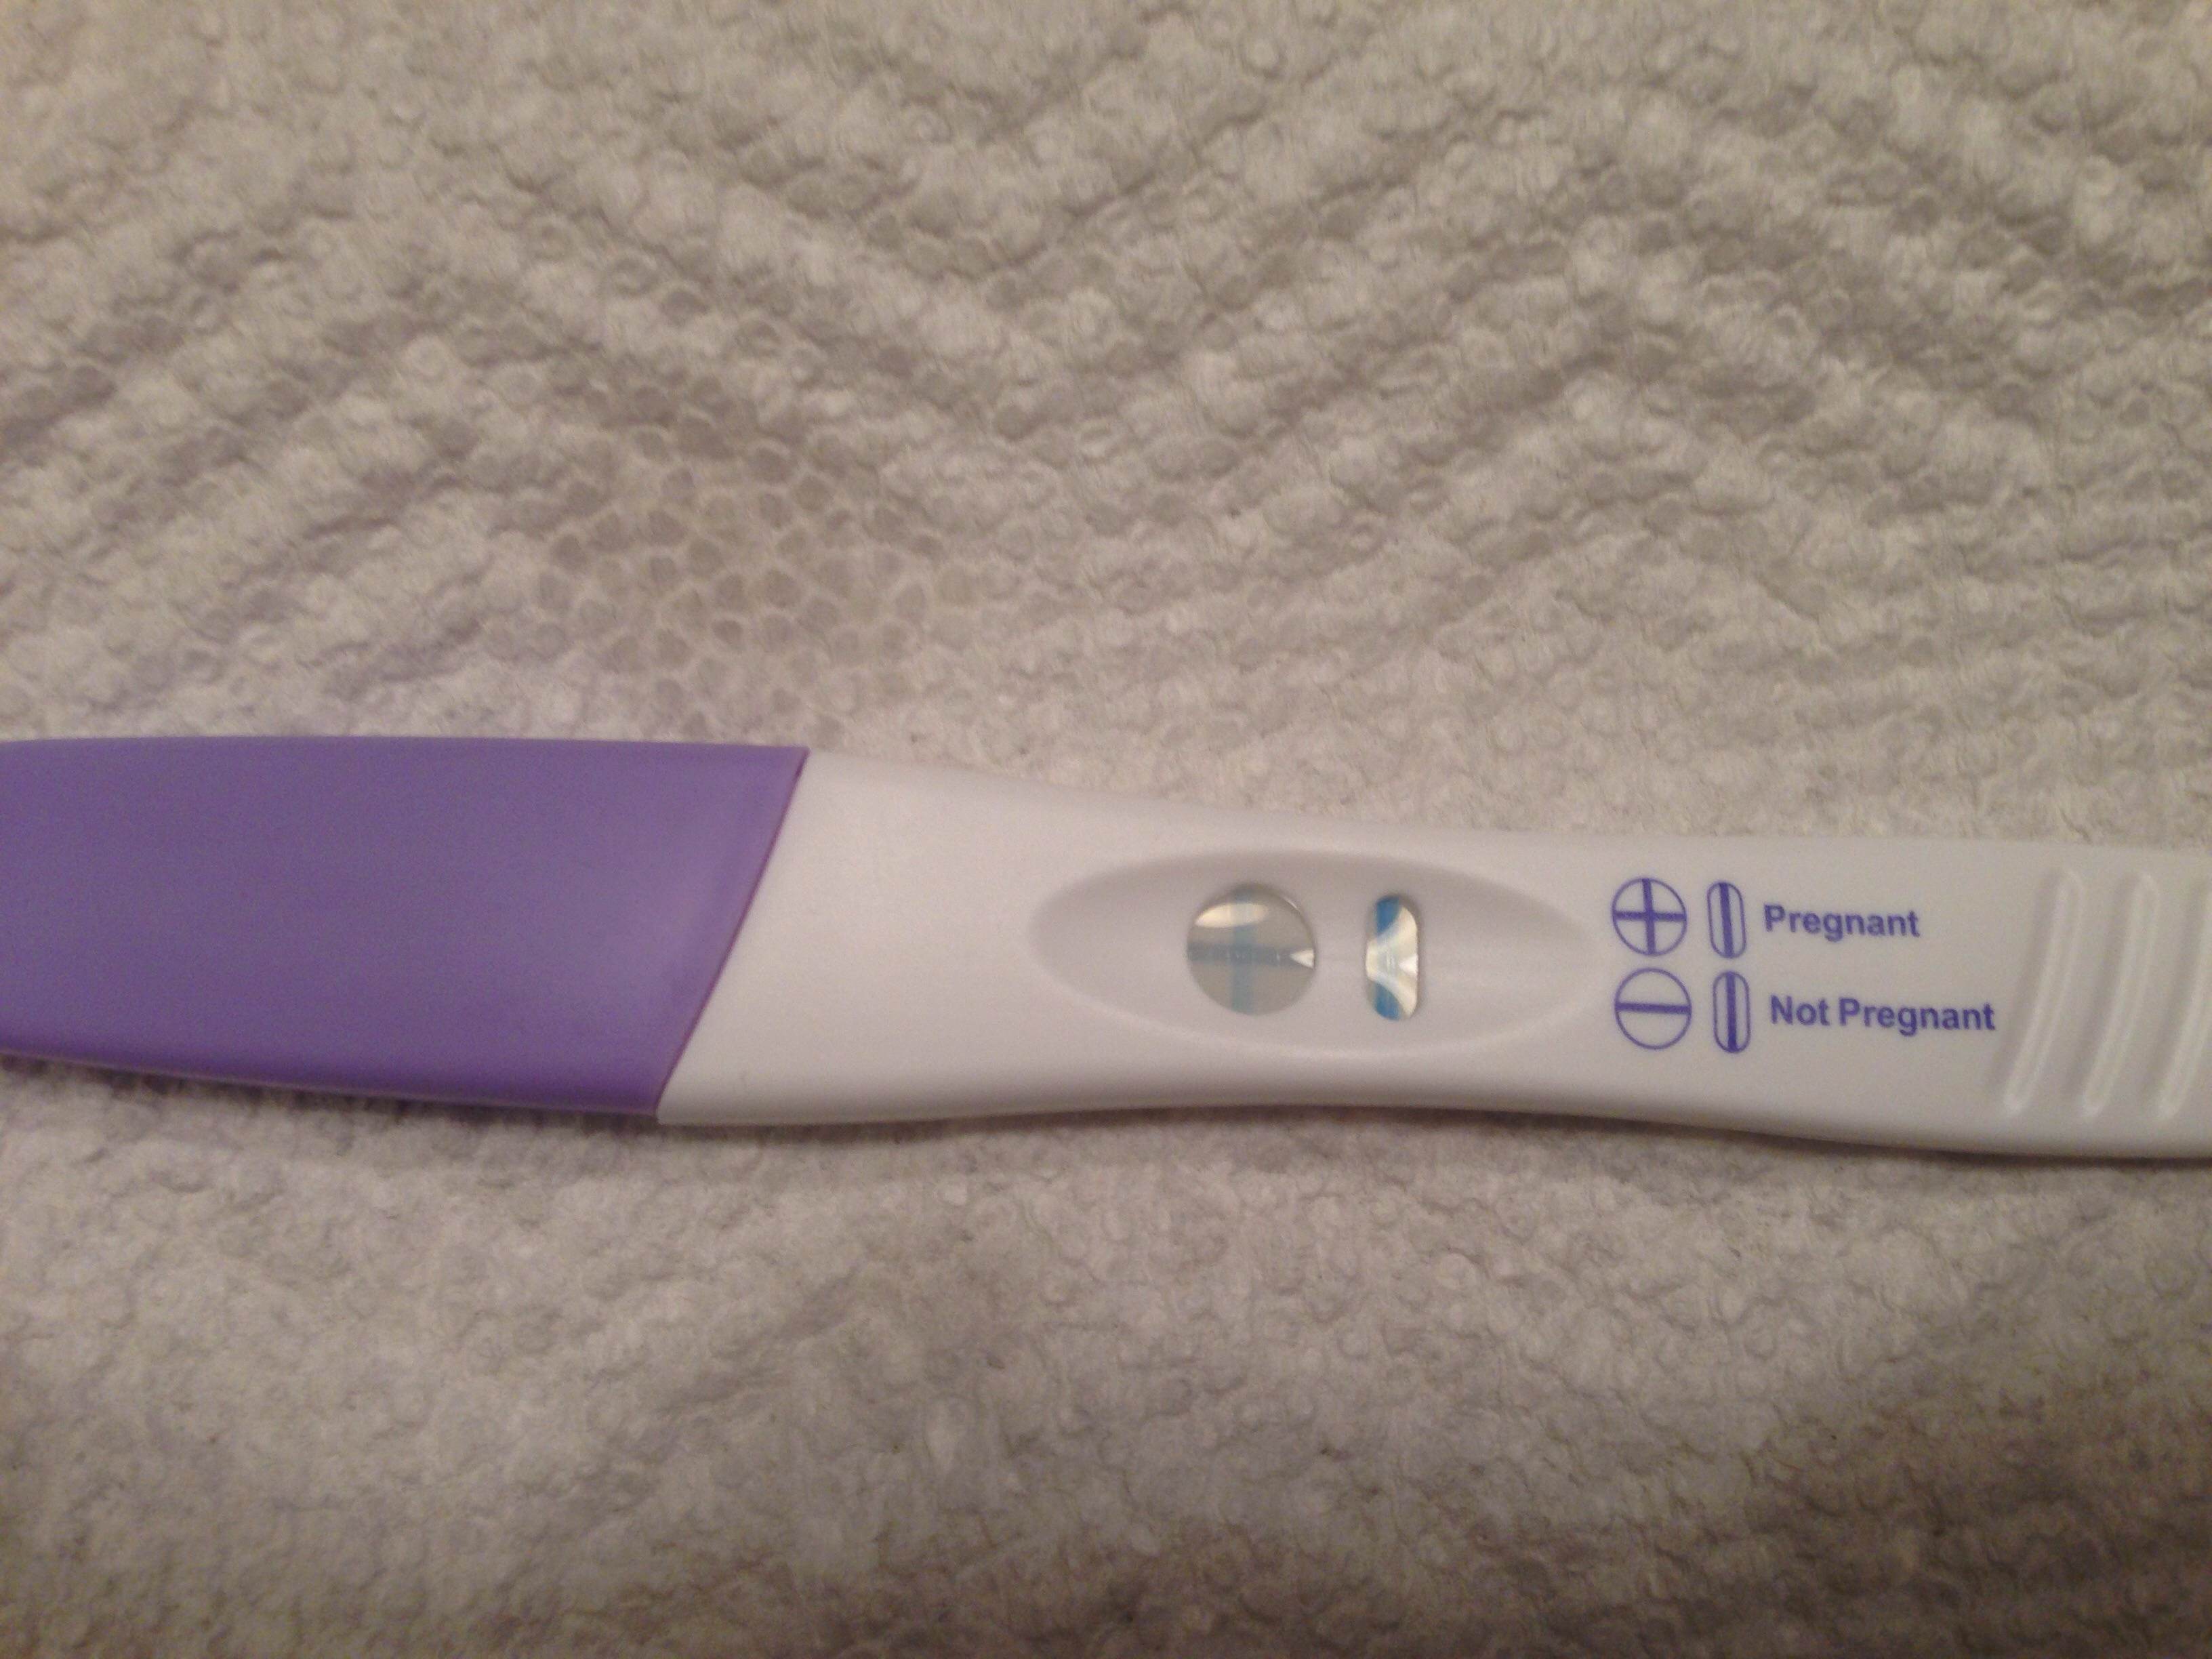 Does clomid make you have a positive pregnancy test